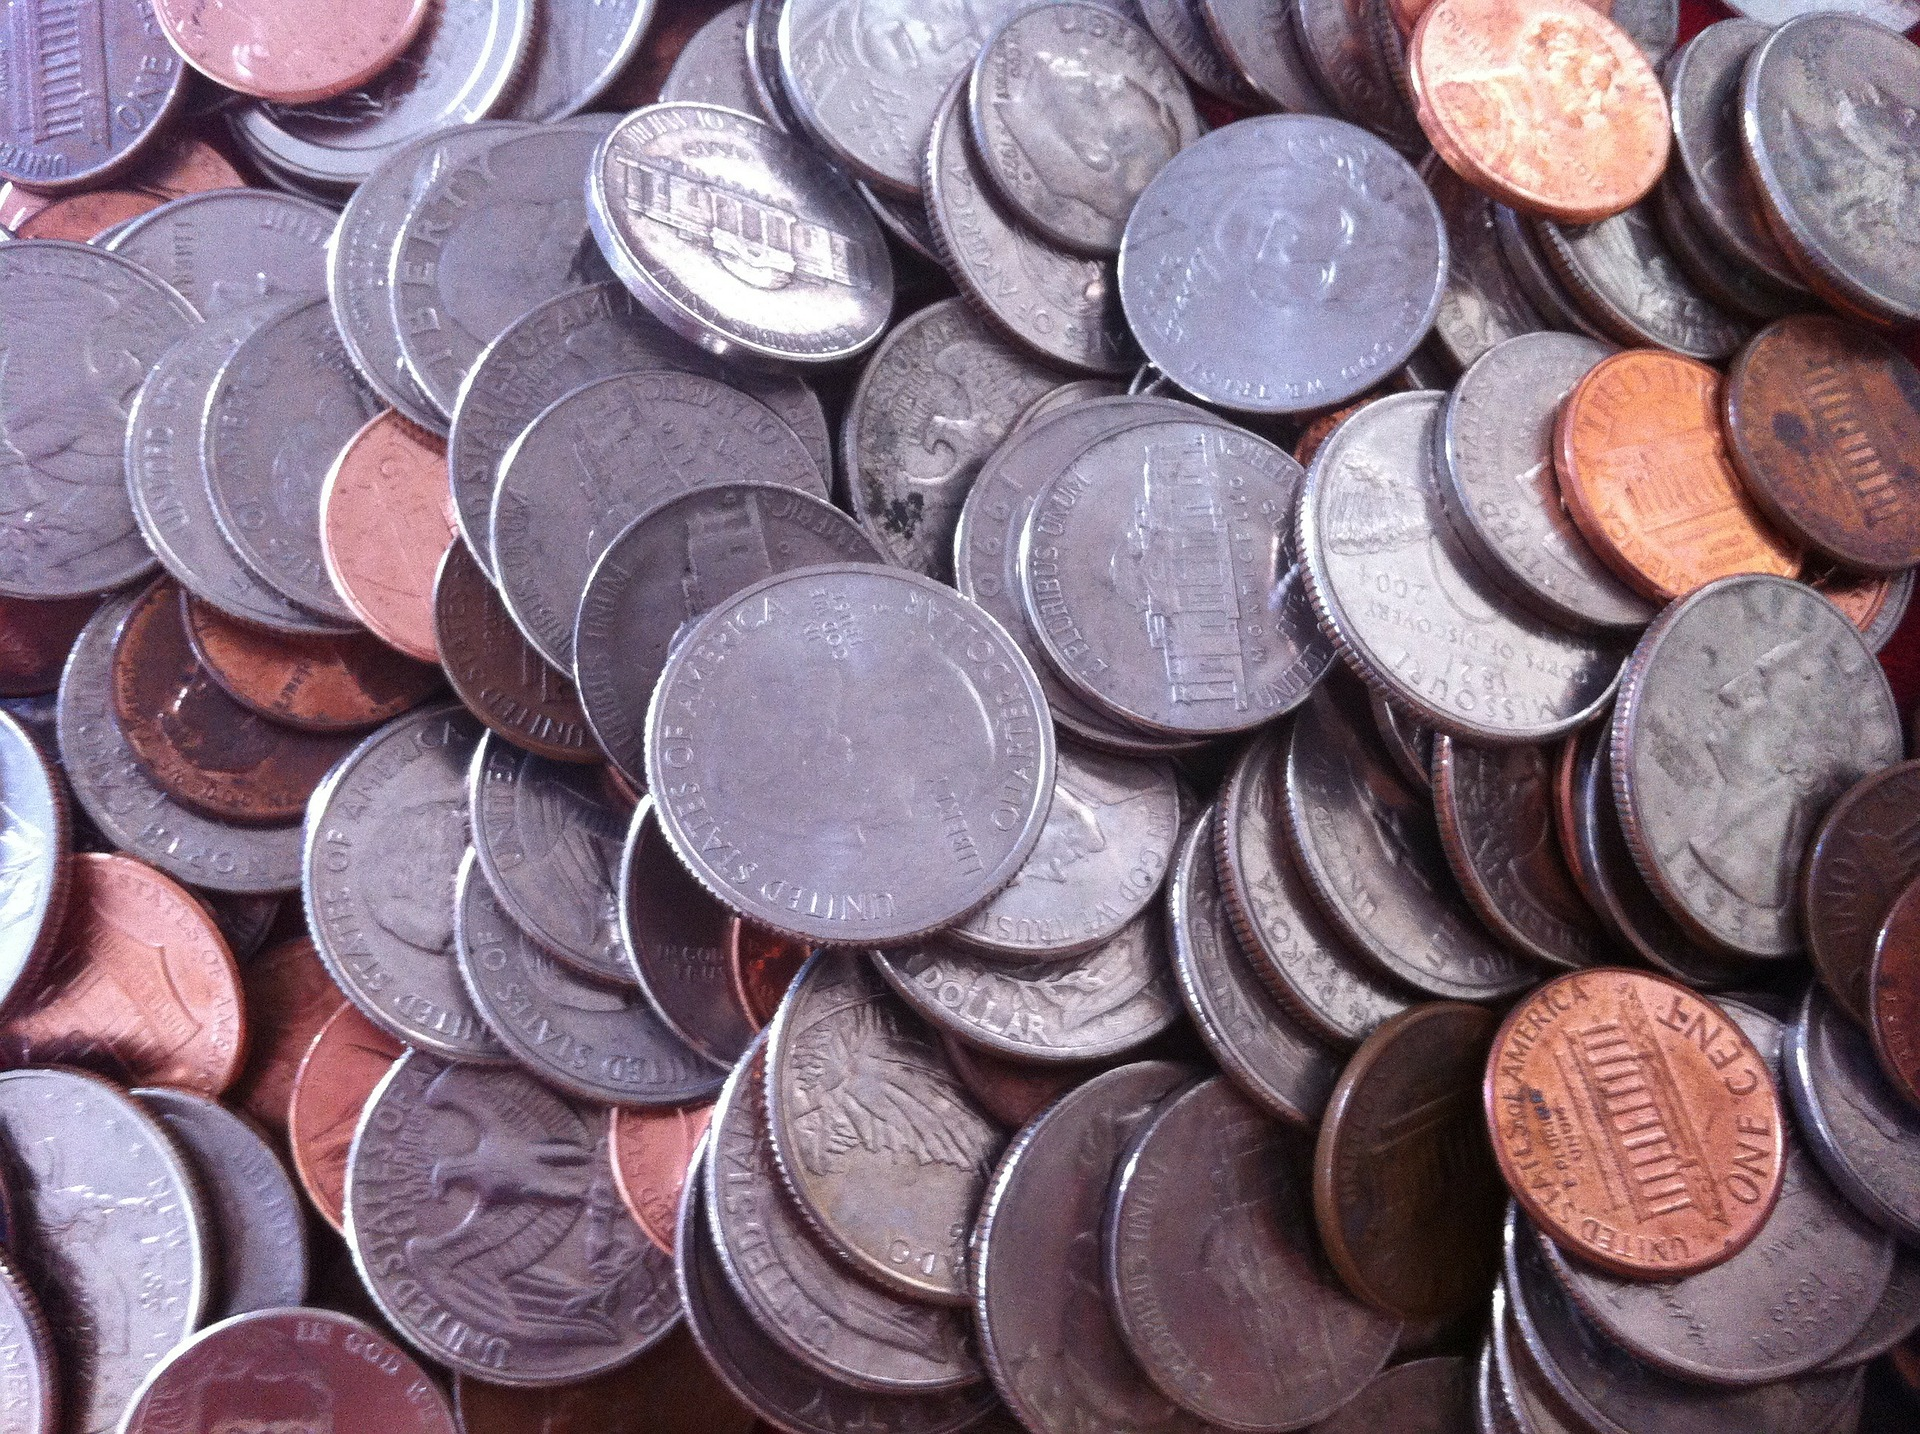 What about coin shortage?